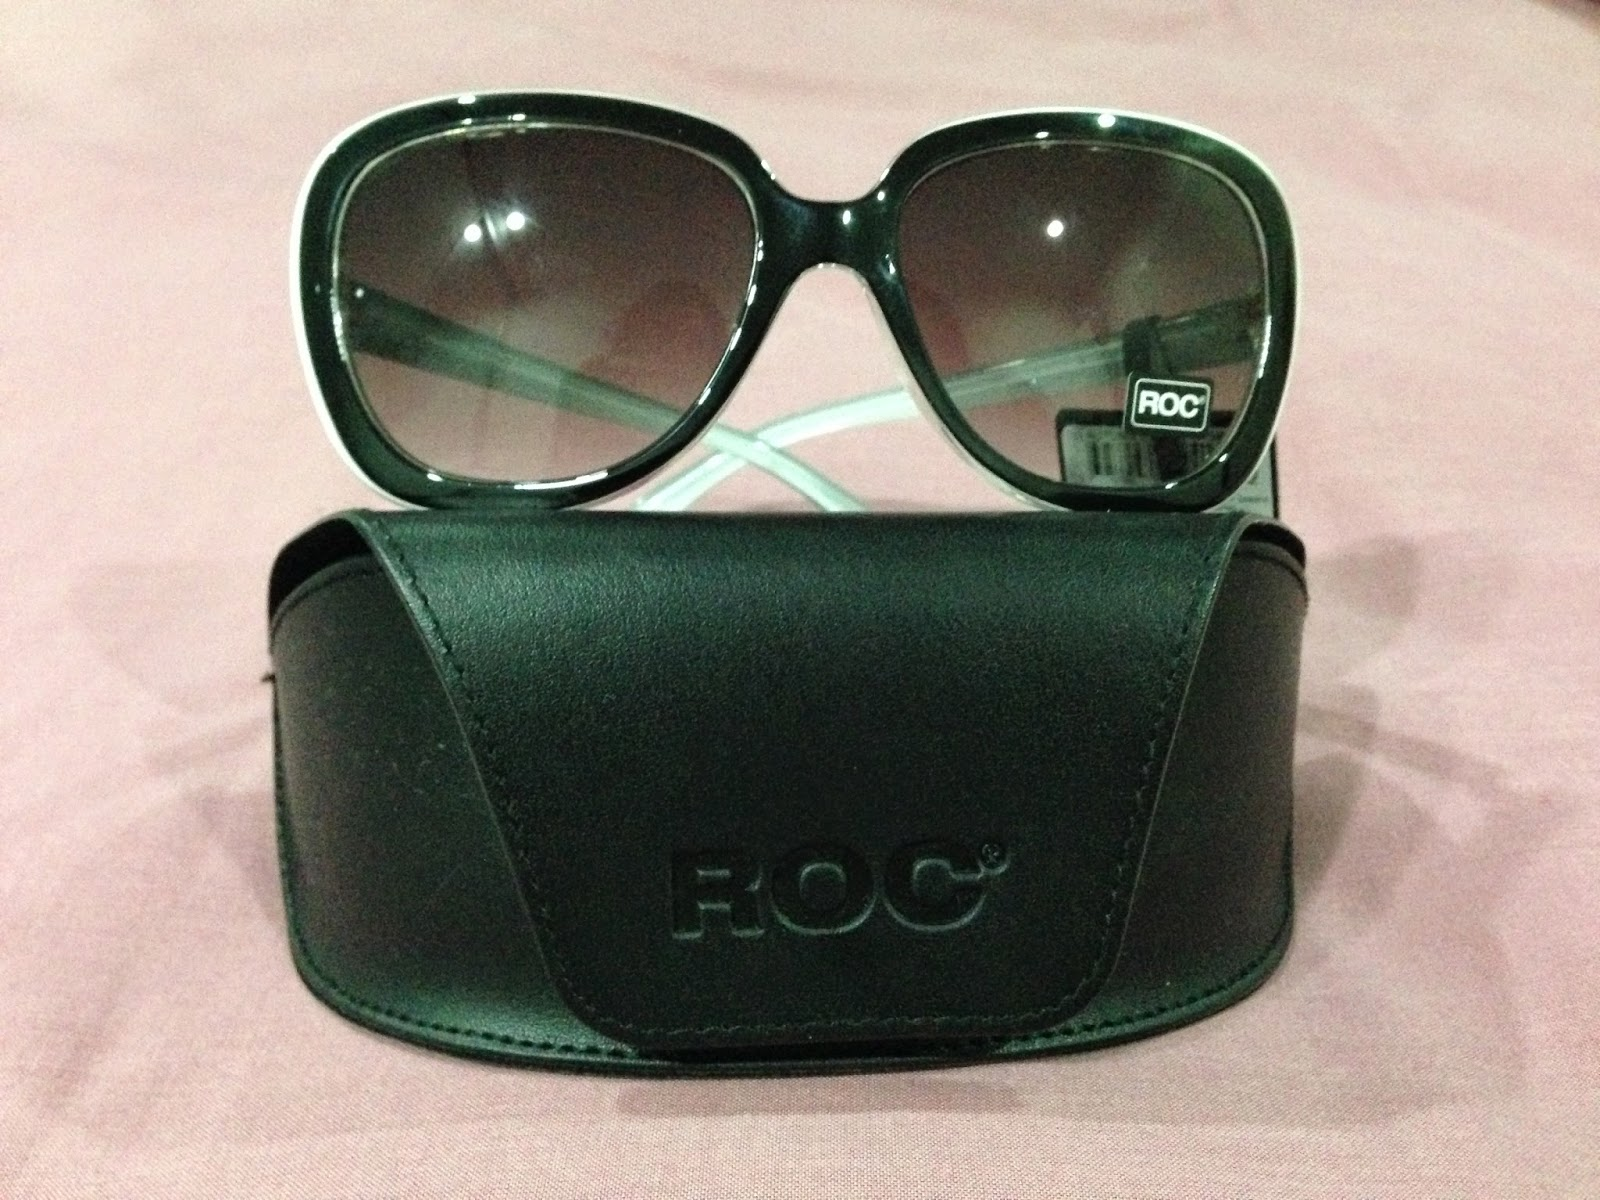 ROC Autumn Black & White sunglasses - butterfly style